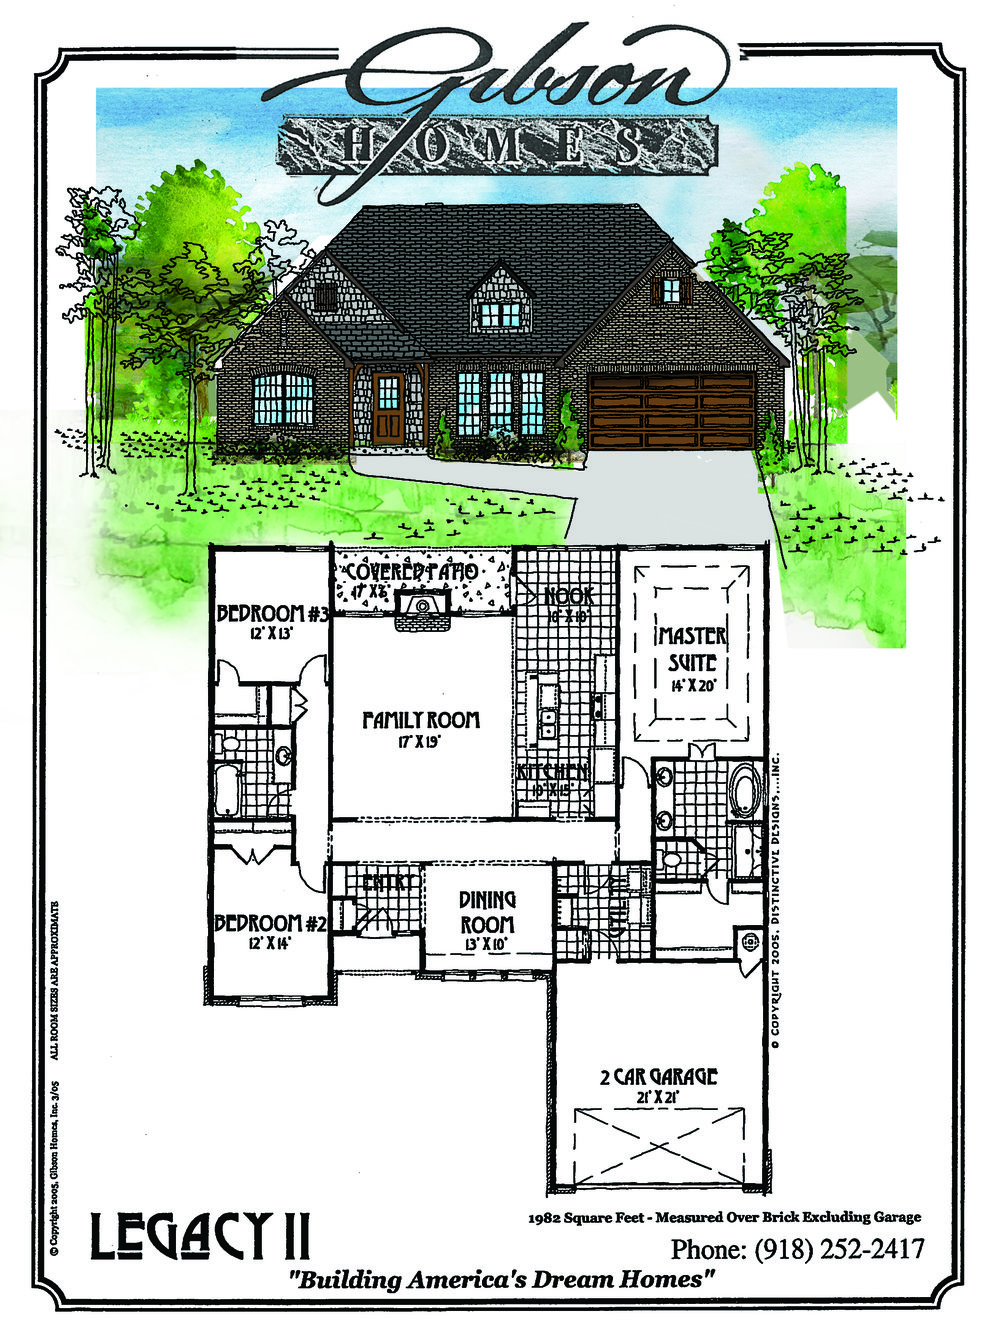 LEGACY II - 1982 Sq. Feet3 bedrooms2 bathroomsFormal Dining2 car garageBase Price $185,000